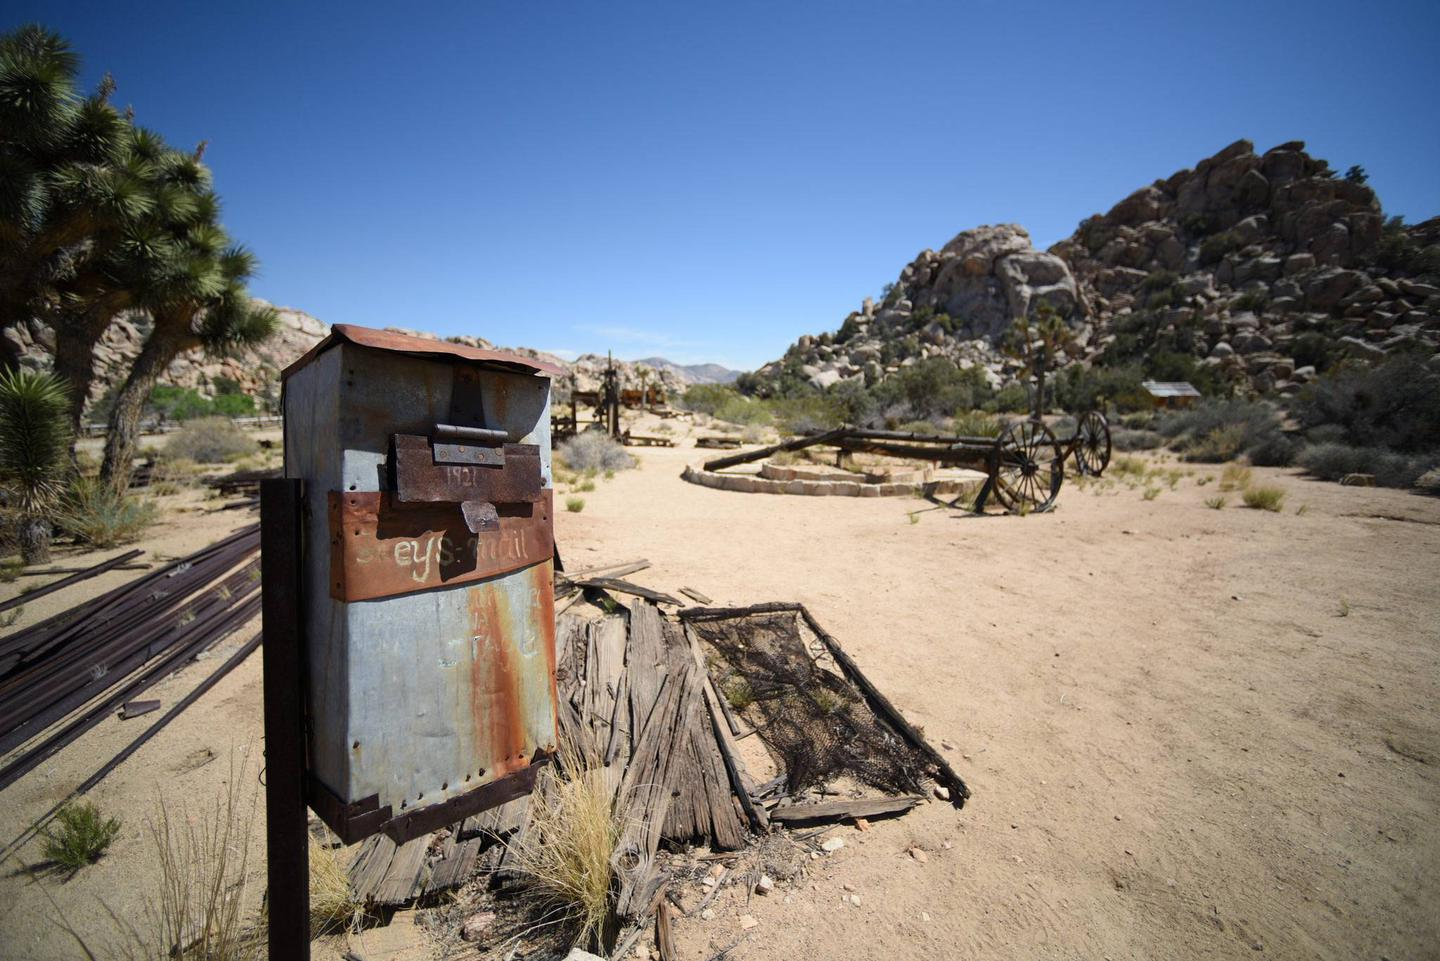 """A rusted tin box stands on a post with the words """"Keys mail"""" scratched into the side. In the background there is various rusted ranch equipment.Mail call! How long do you suppose it would take for a letter to arrive at Keys Ranch?"""